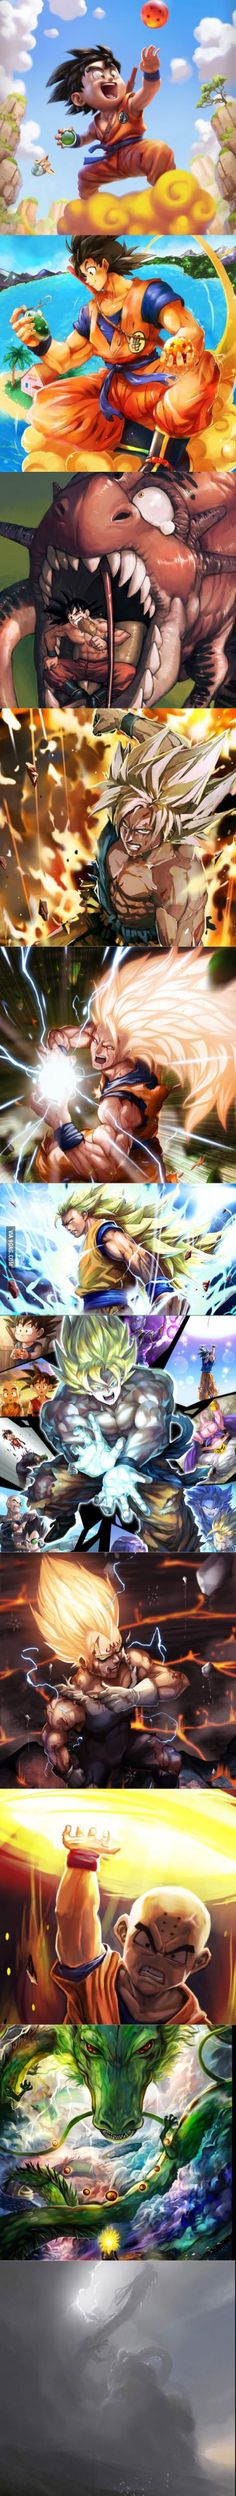 Great DBZ artwork. Upvote for more.